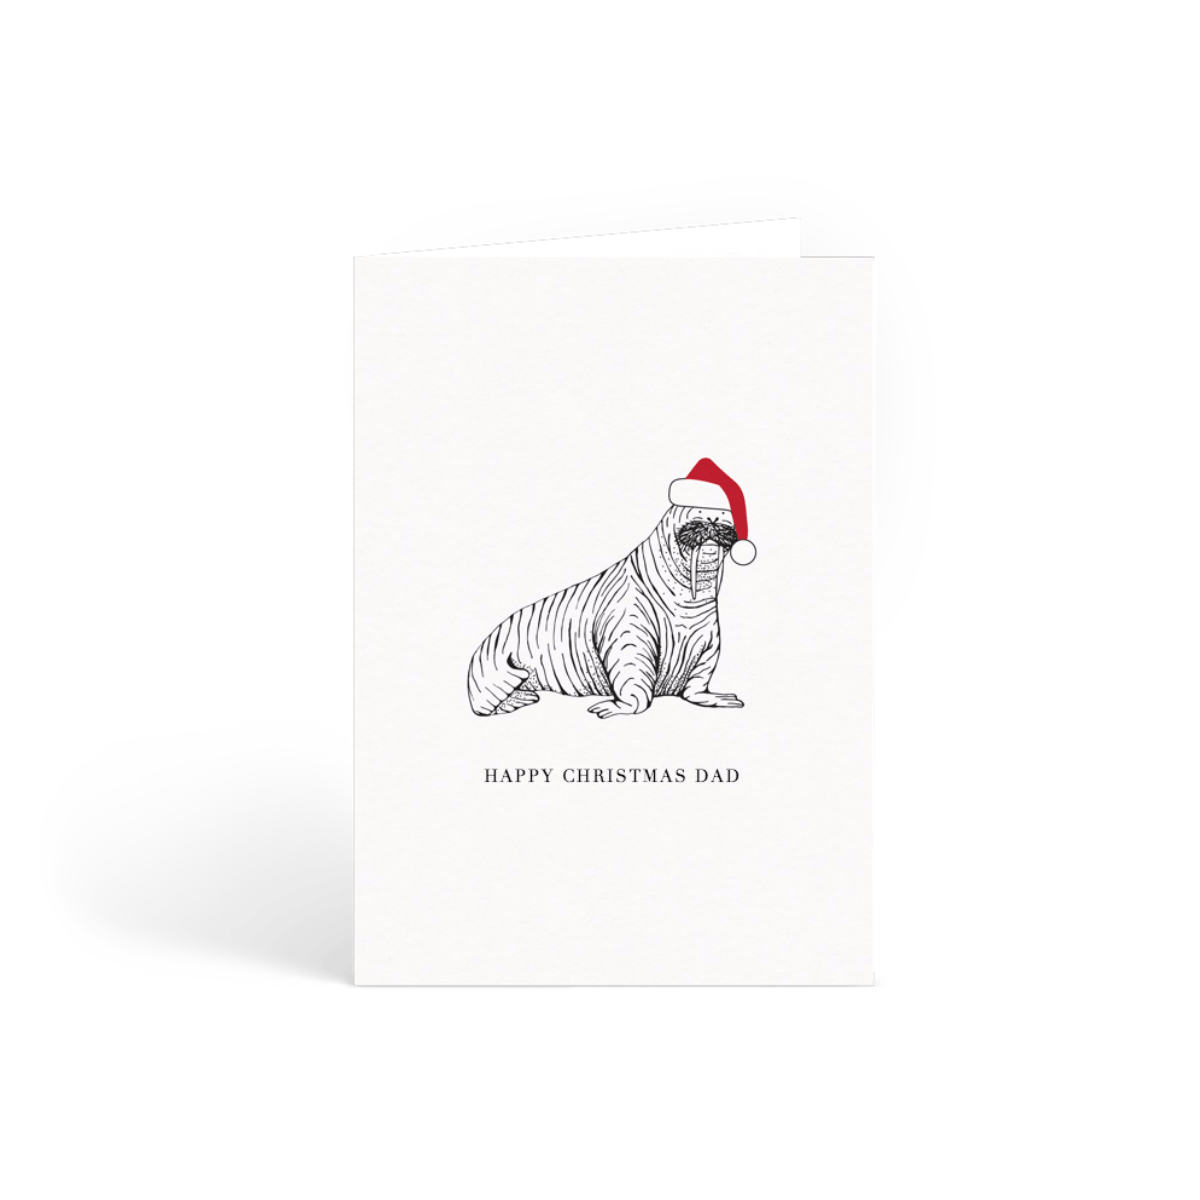 Https%3a%2f%2fwww.papier.com%2fproduct image%2f12462%2f2%2fchristmas walrus 3138 front 1477935302.png?ixlib=rb 1.1